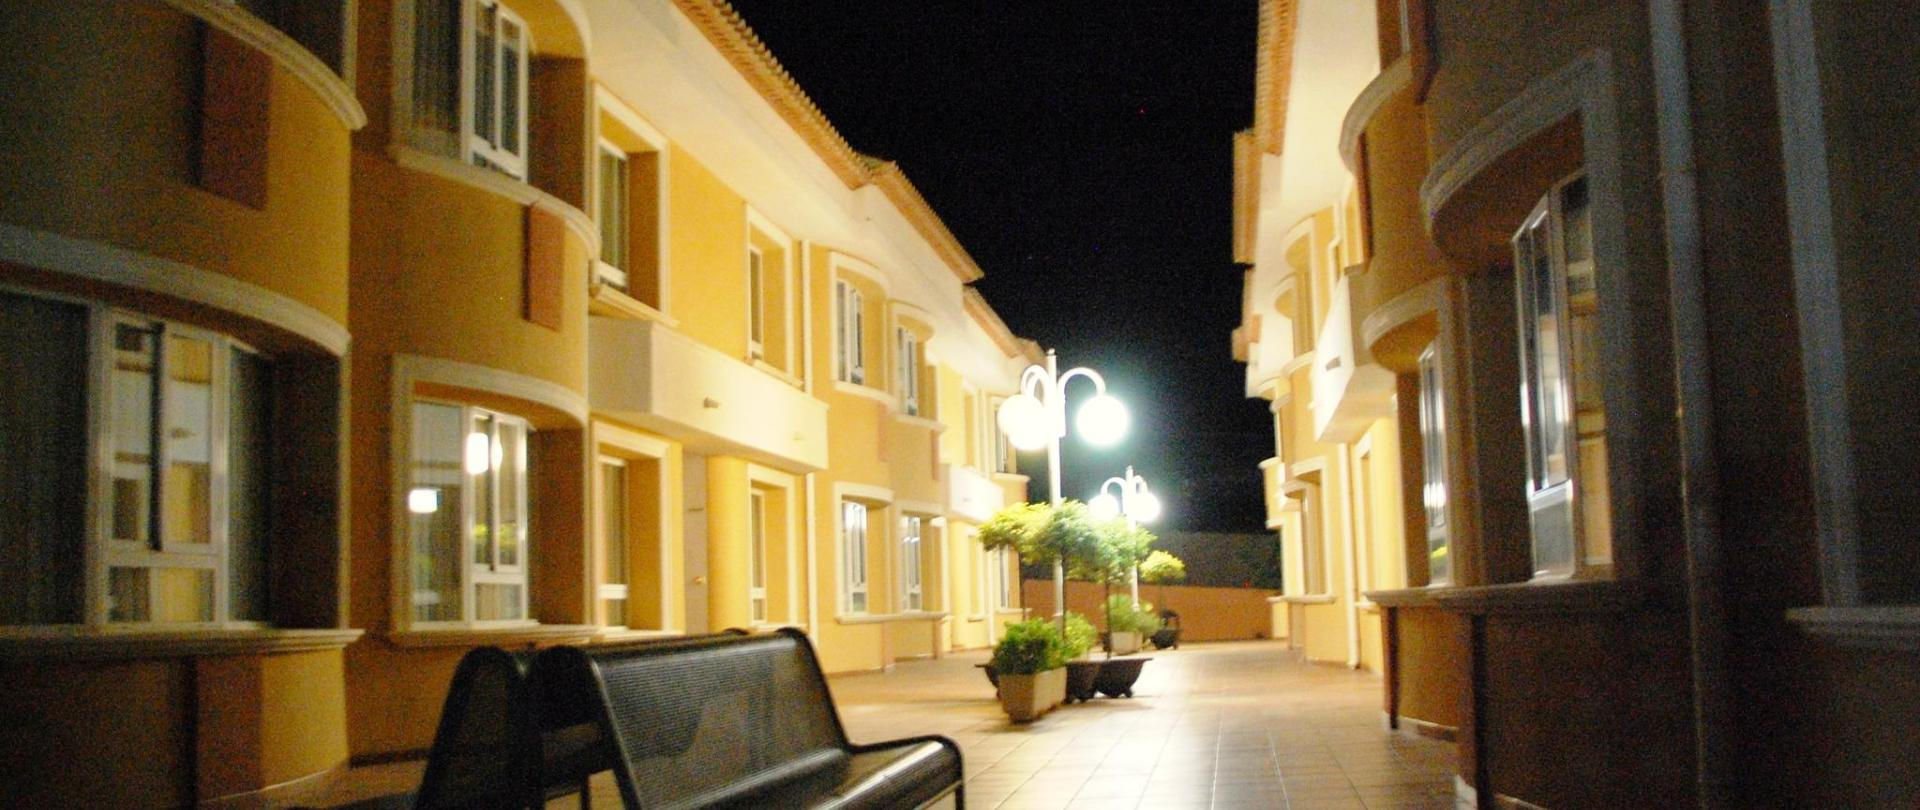 Apartment Acces by Night.jpg